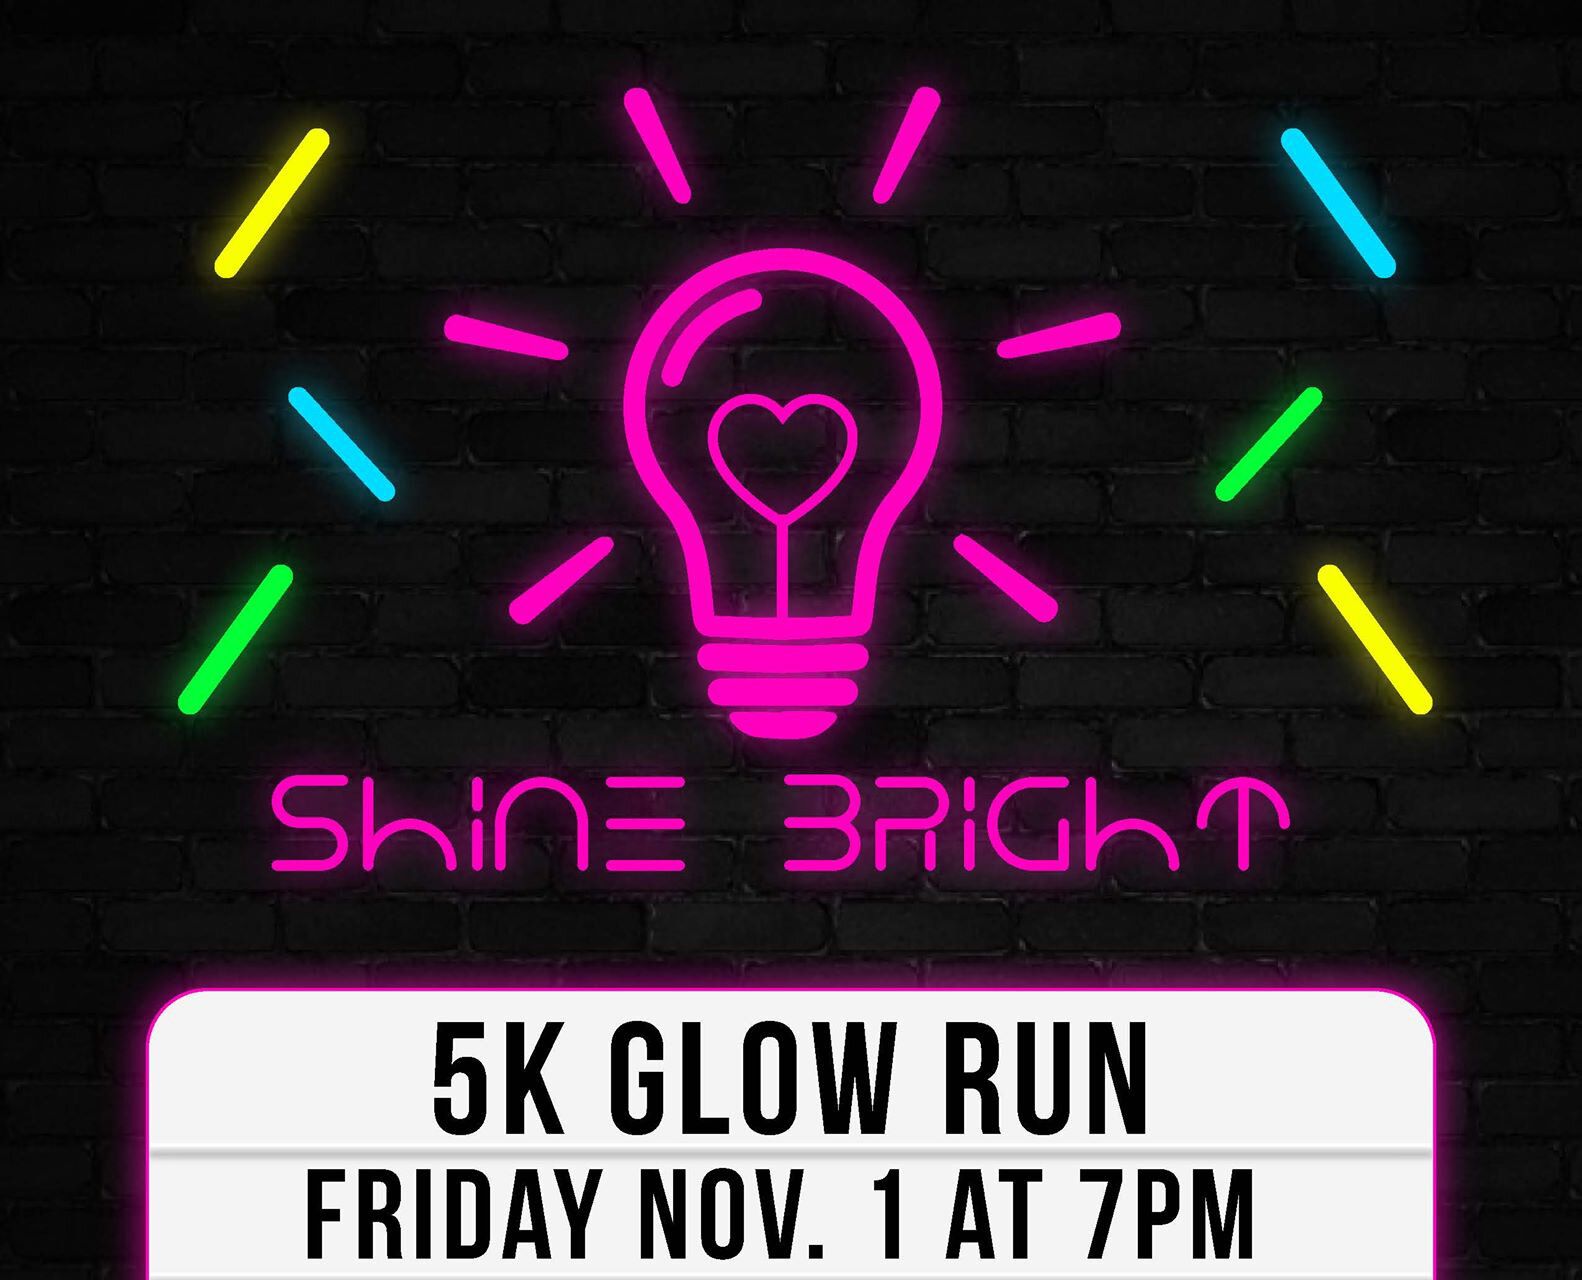 Shine bright 5k walk run! November 1st @7pm morsches parkRegistration begins at 6 pm$20 adults(shirt and glow sticks)$10 kids(glow sticks)Register by October 20th to guarantee shirt! - All proceeds to benefit community of hope mission trip to Haiti.We will have ribbons for first, second, and third place finishers in each age group and a prize for overall winner.